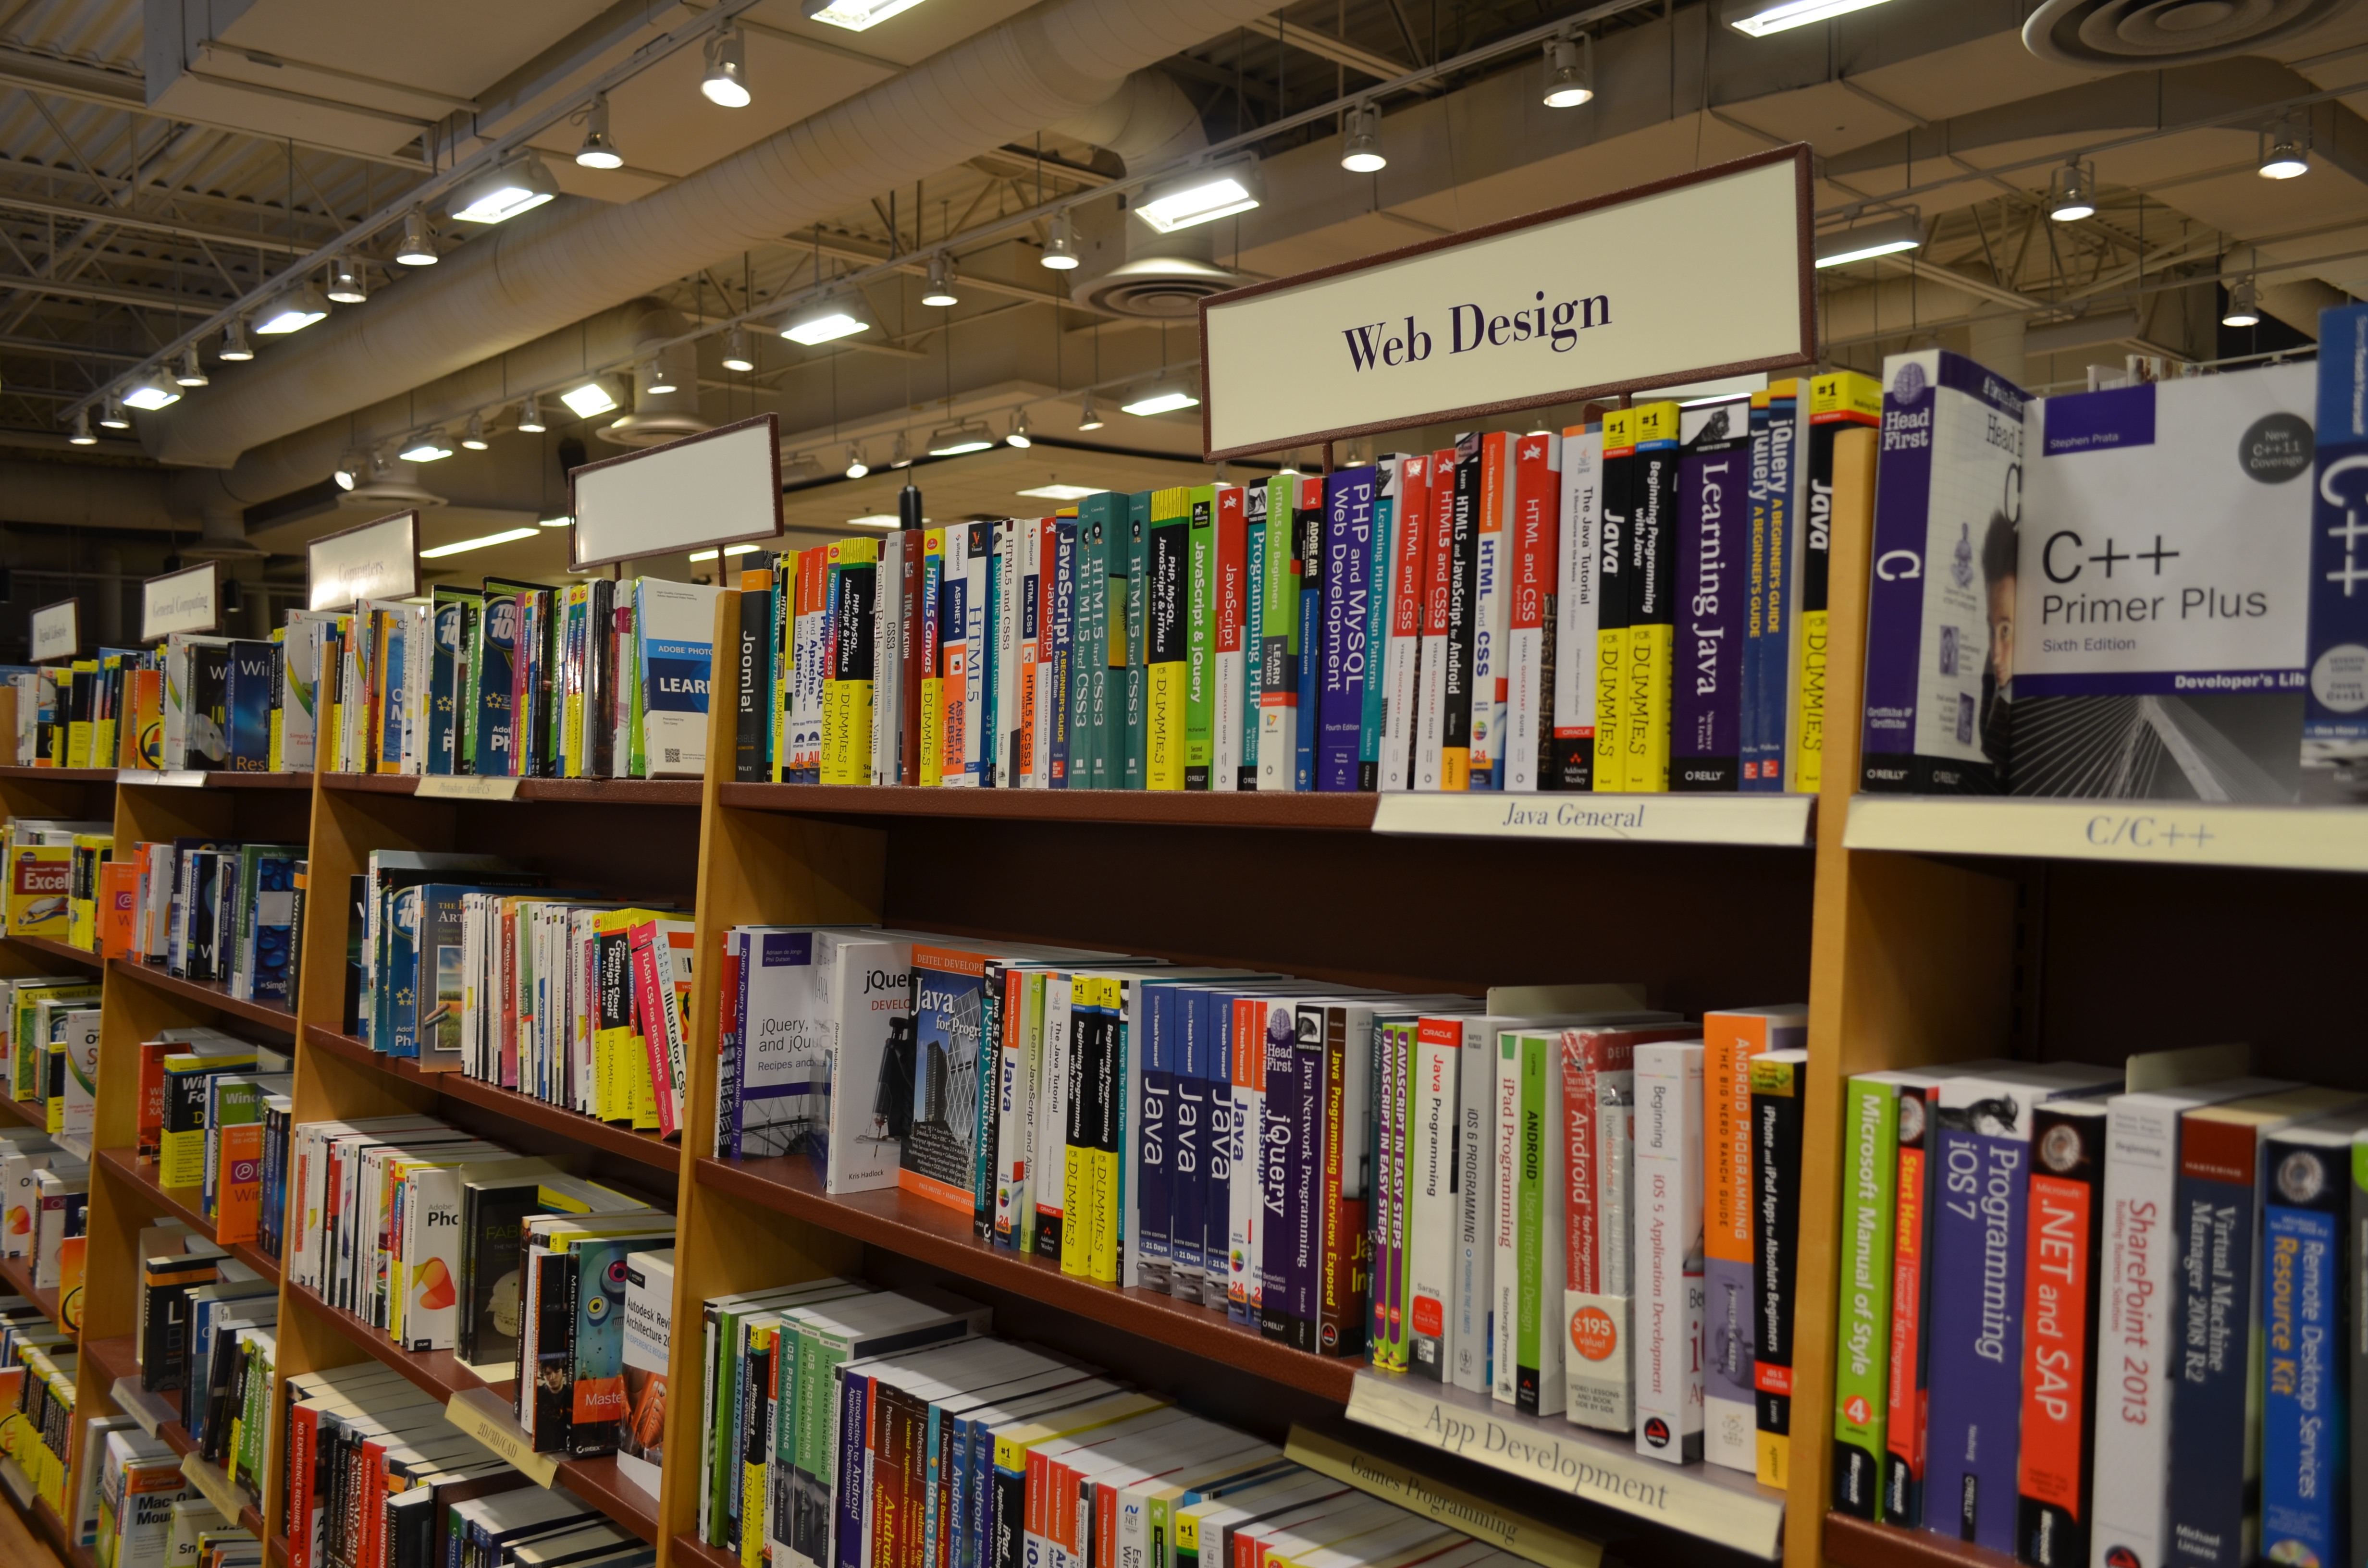 Website Design Books in a library